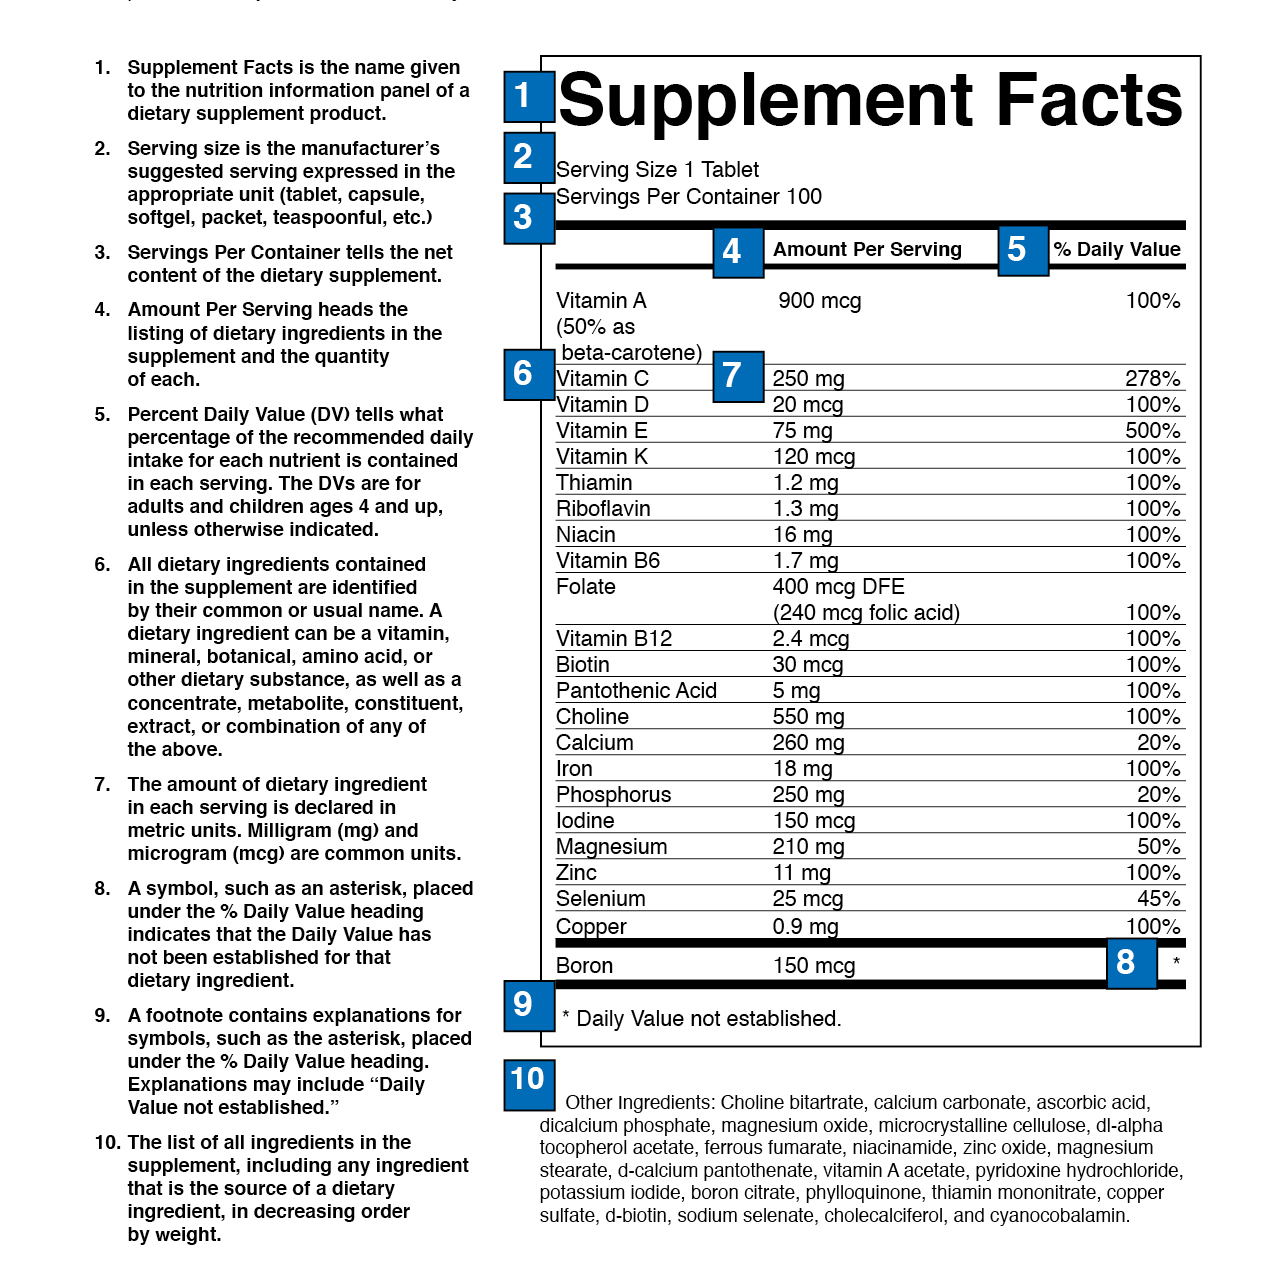 How-to-Read-Supplement-Label.jpg